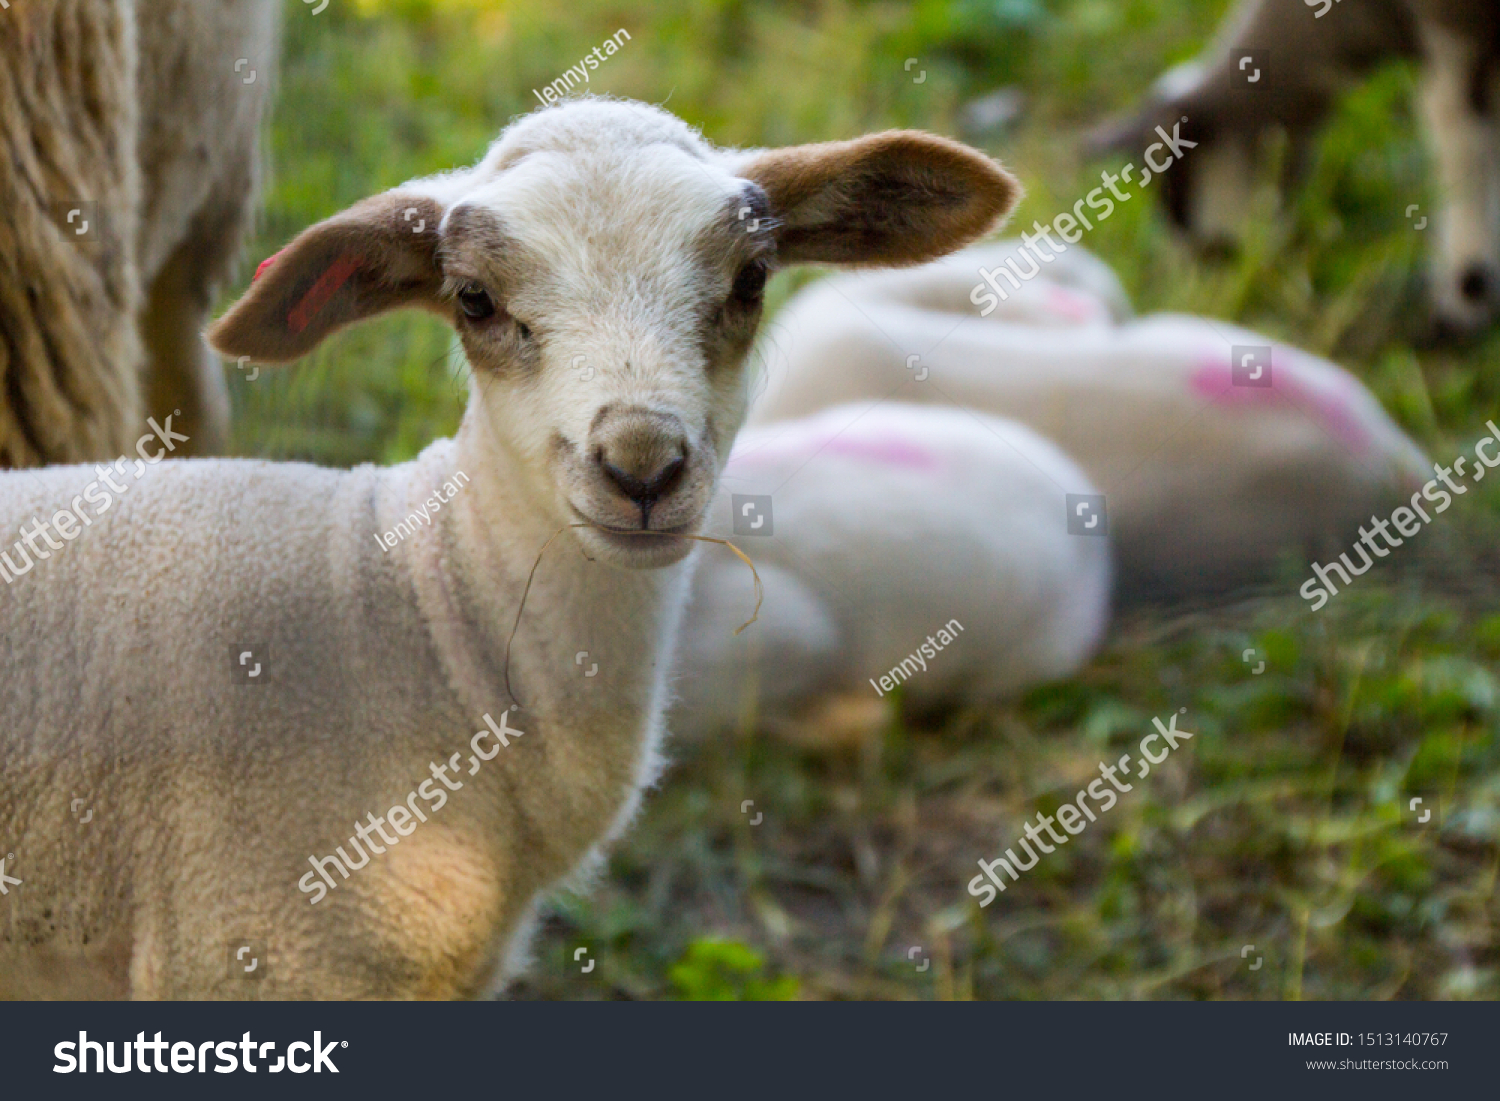 stock-photo-small-white-lamb-with-brown-